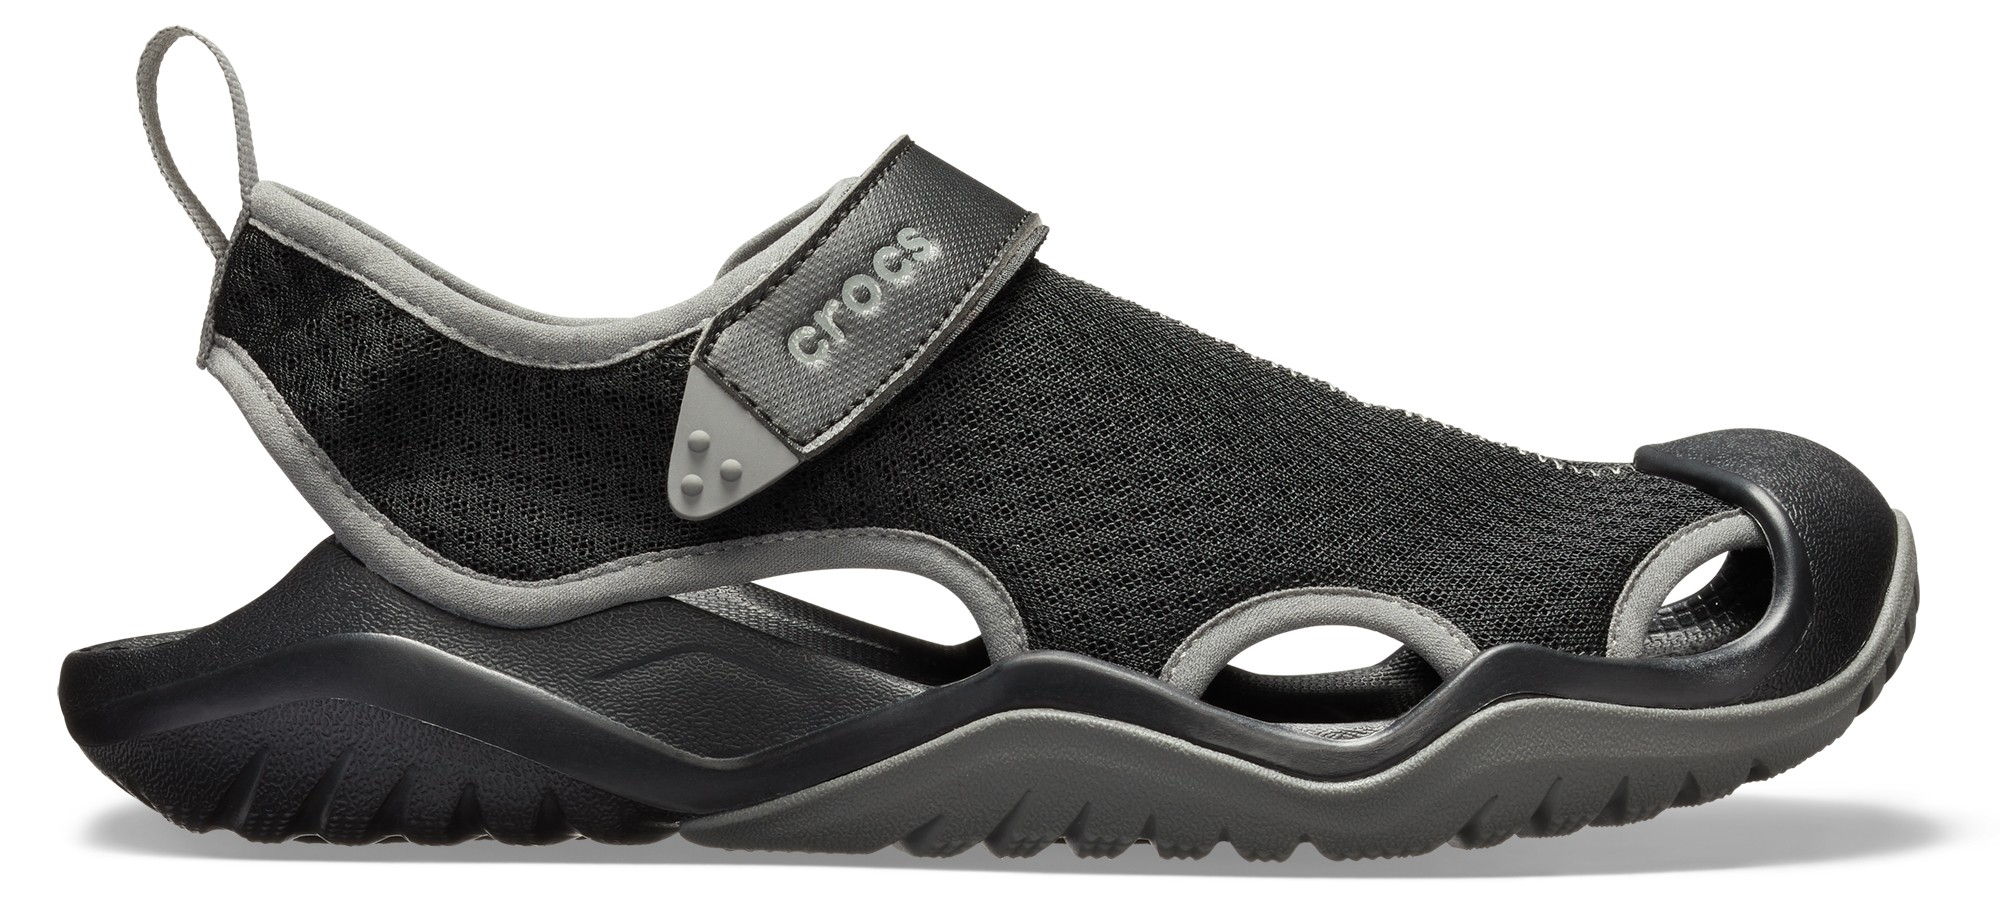 Crocs™ Swiftwater Mesh Deck Sandal Men's Black 41